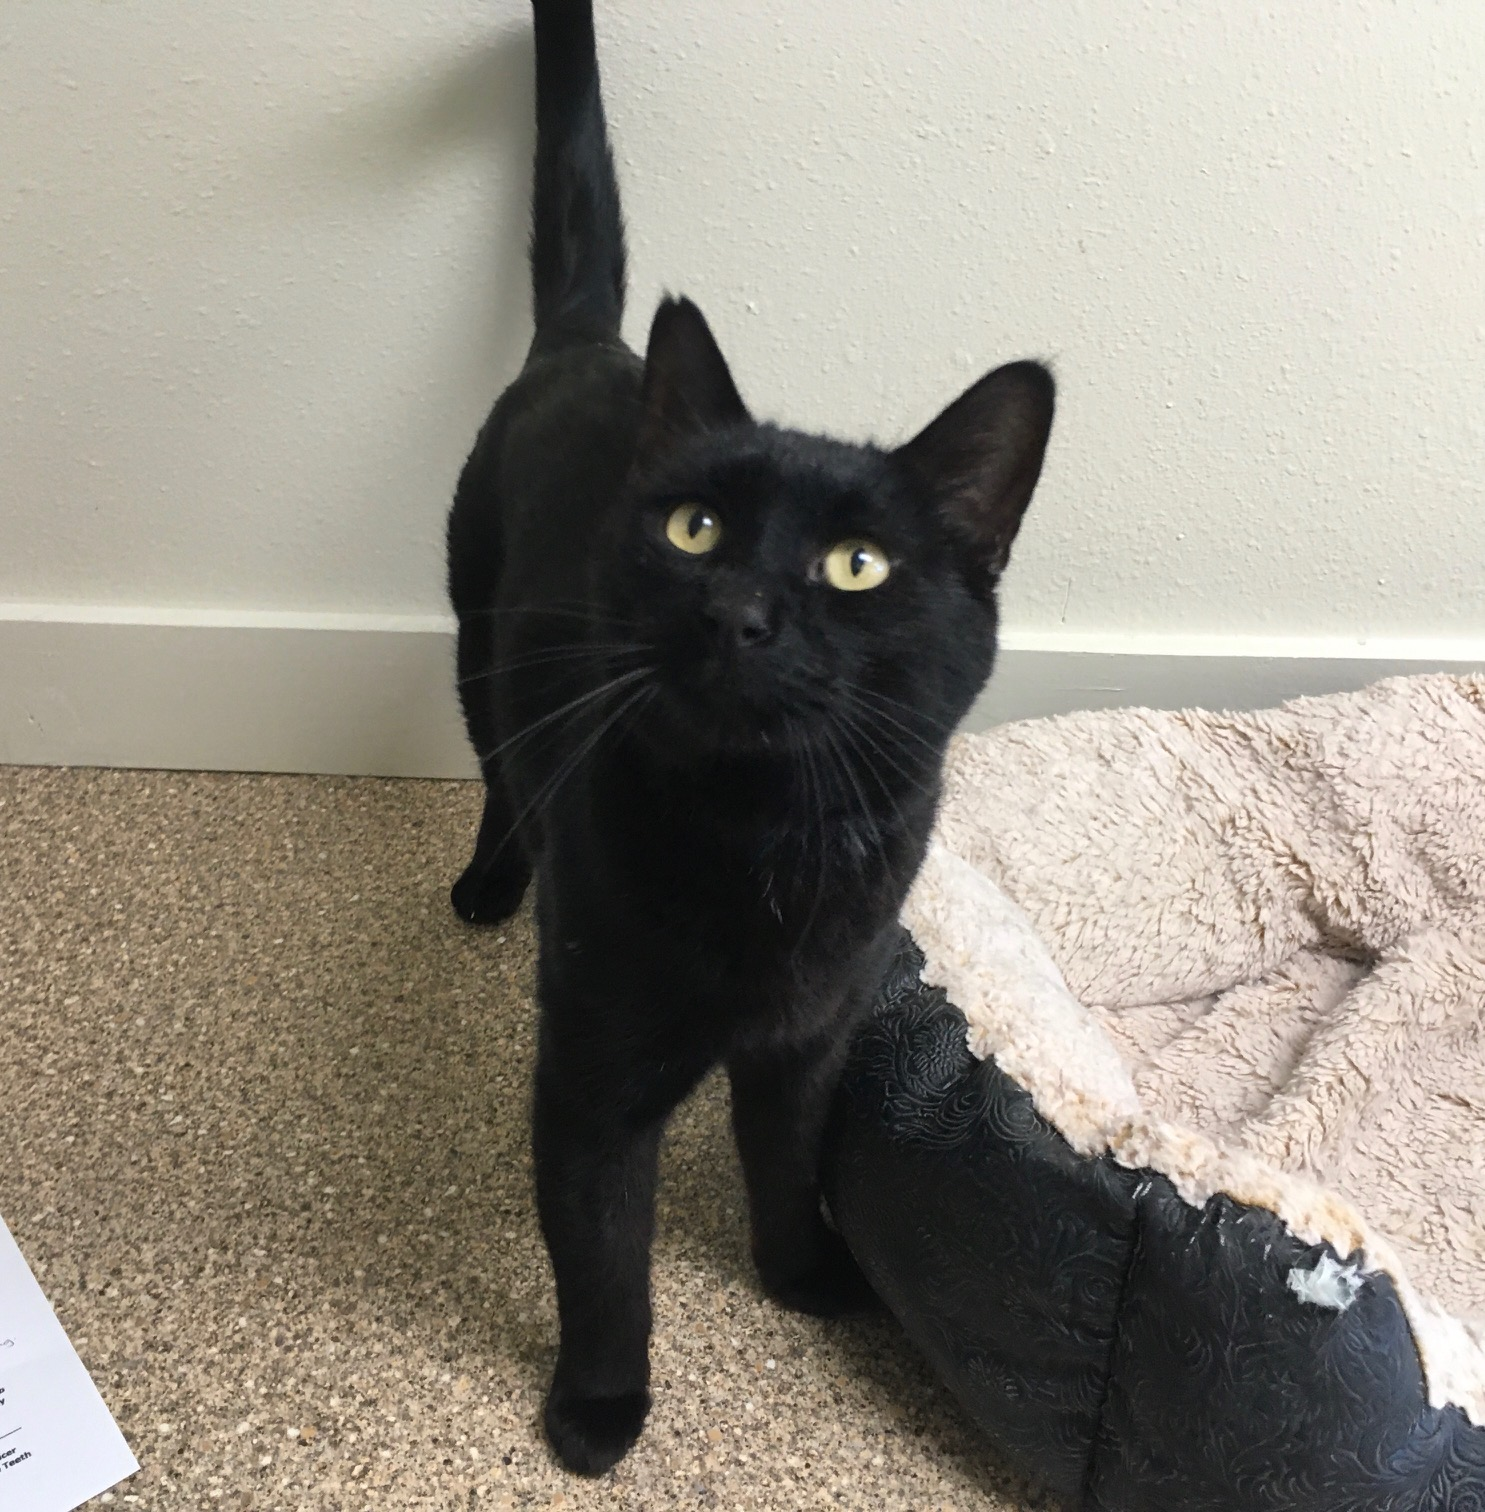 Pumpkin is a 10-year-old sleek male. He was surrendered only because of medical issues in the family. He has lived in a home with other cats and dogs and did great with both!